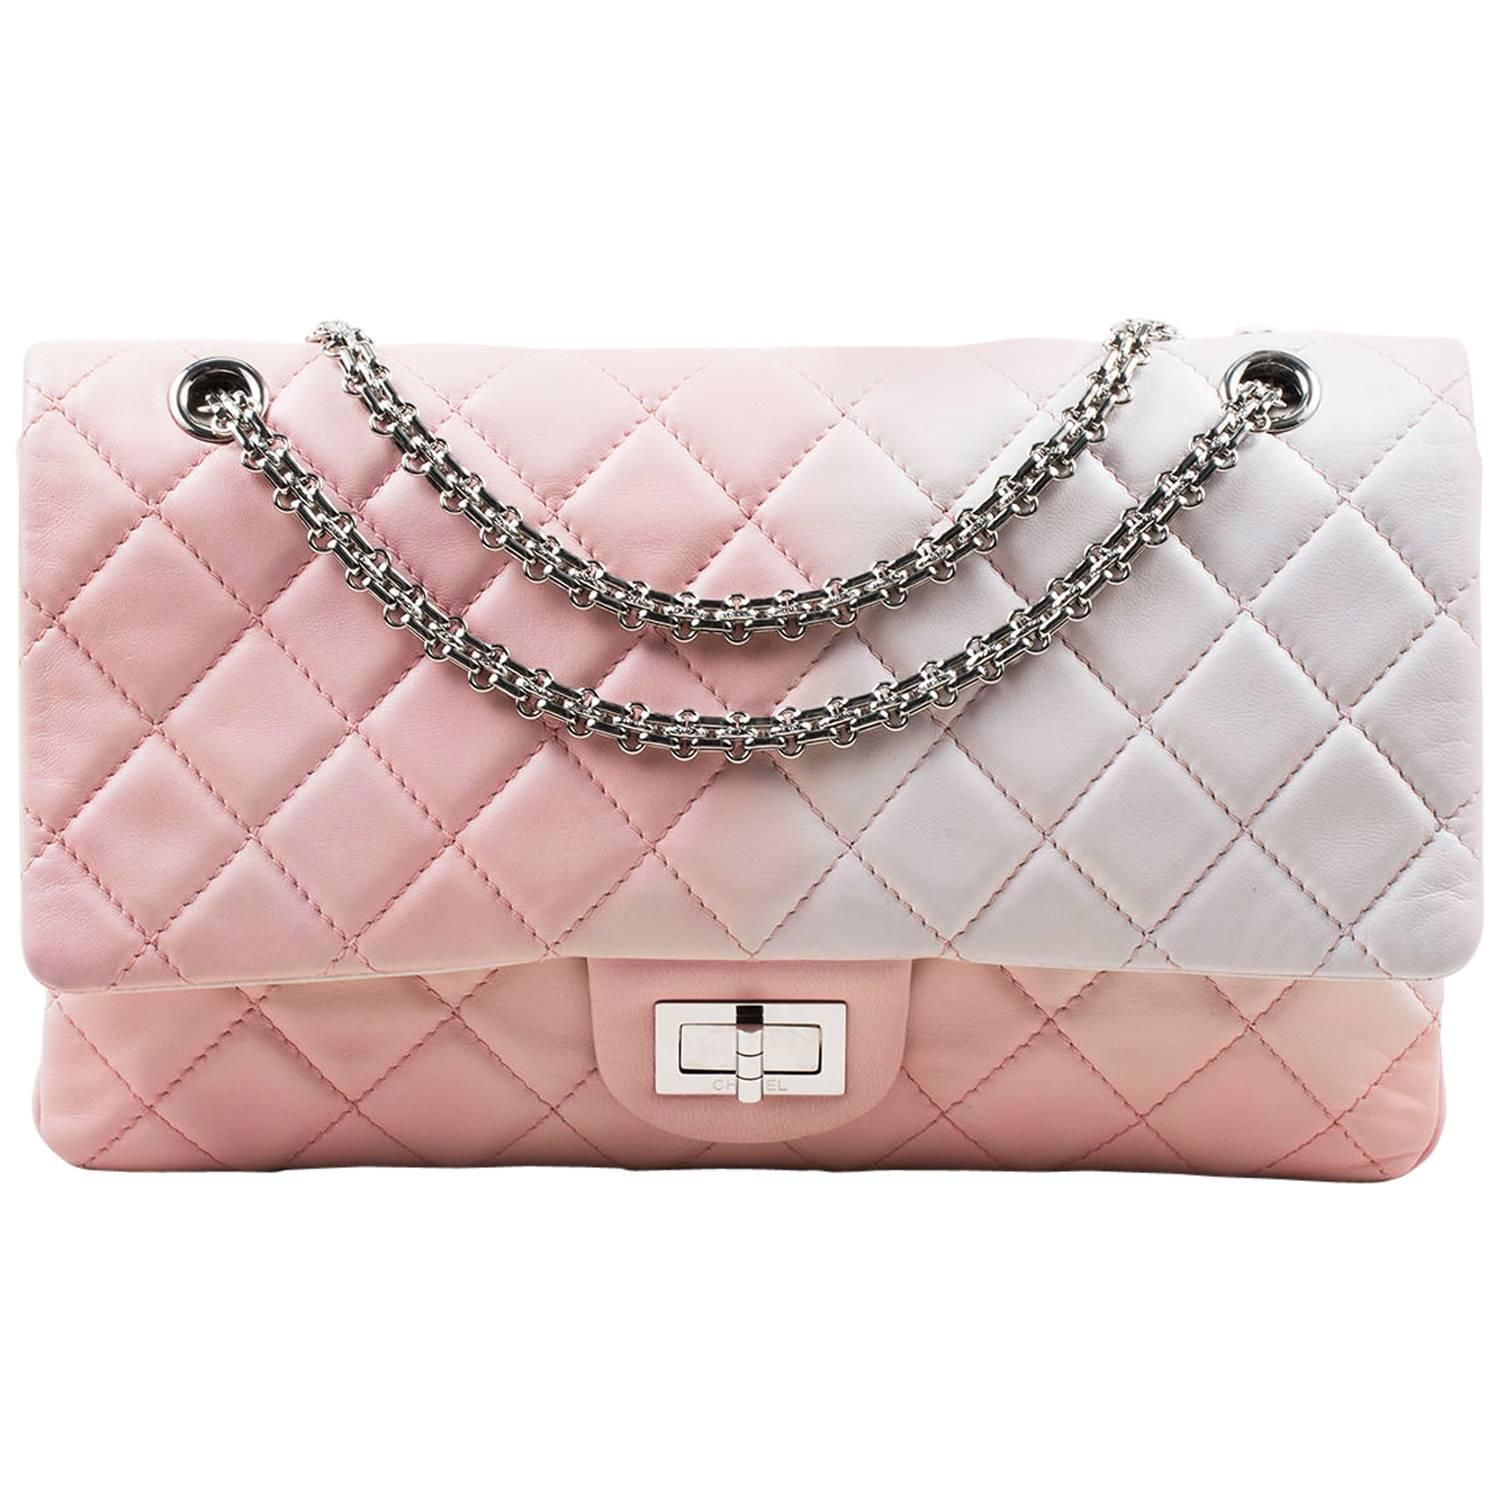 2e4da7b5324b Chanel Pink White Leather Ombre Degradé